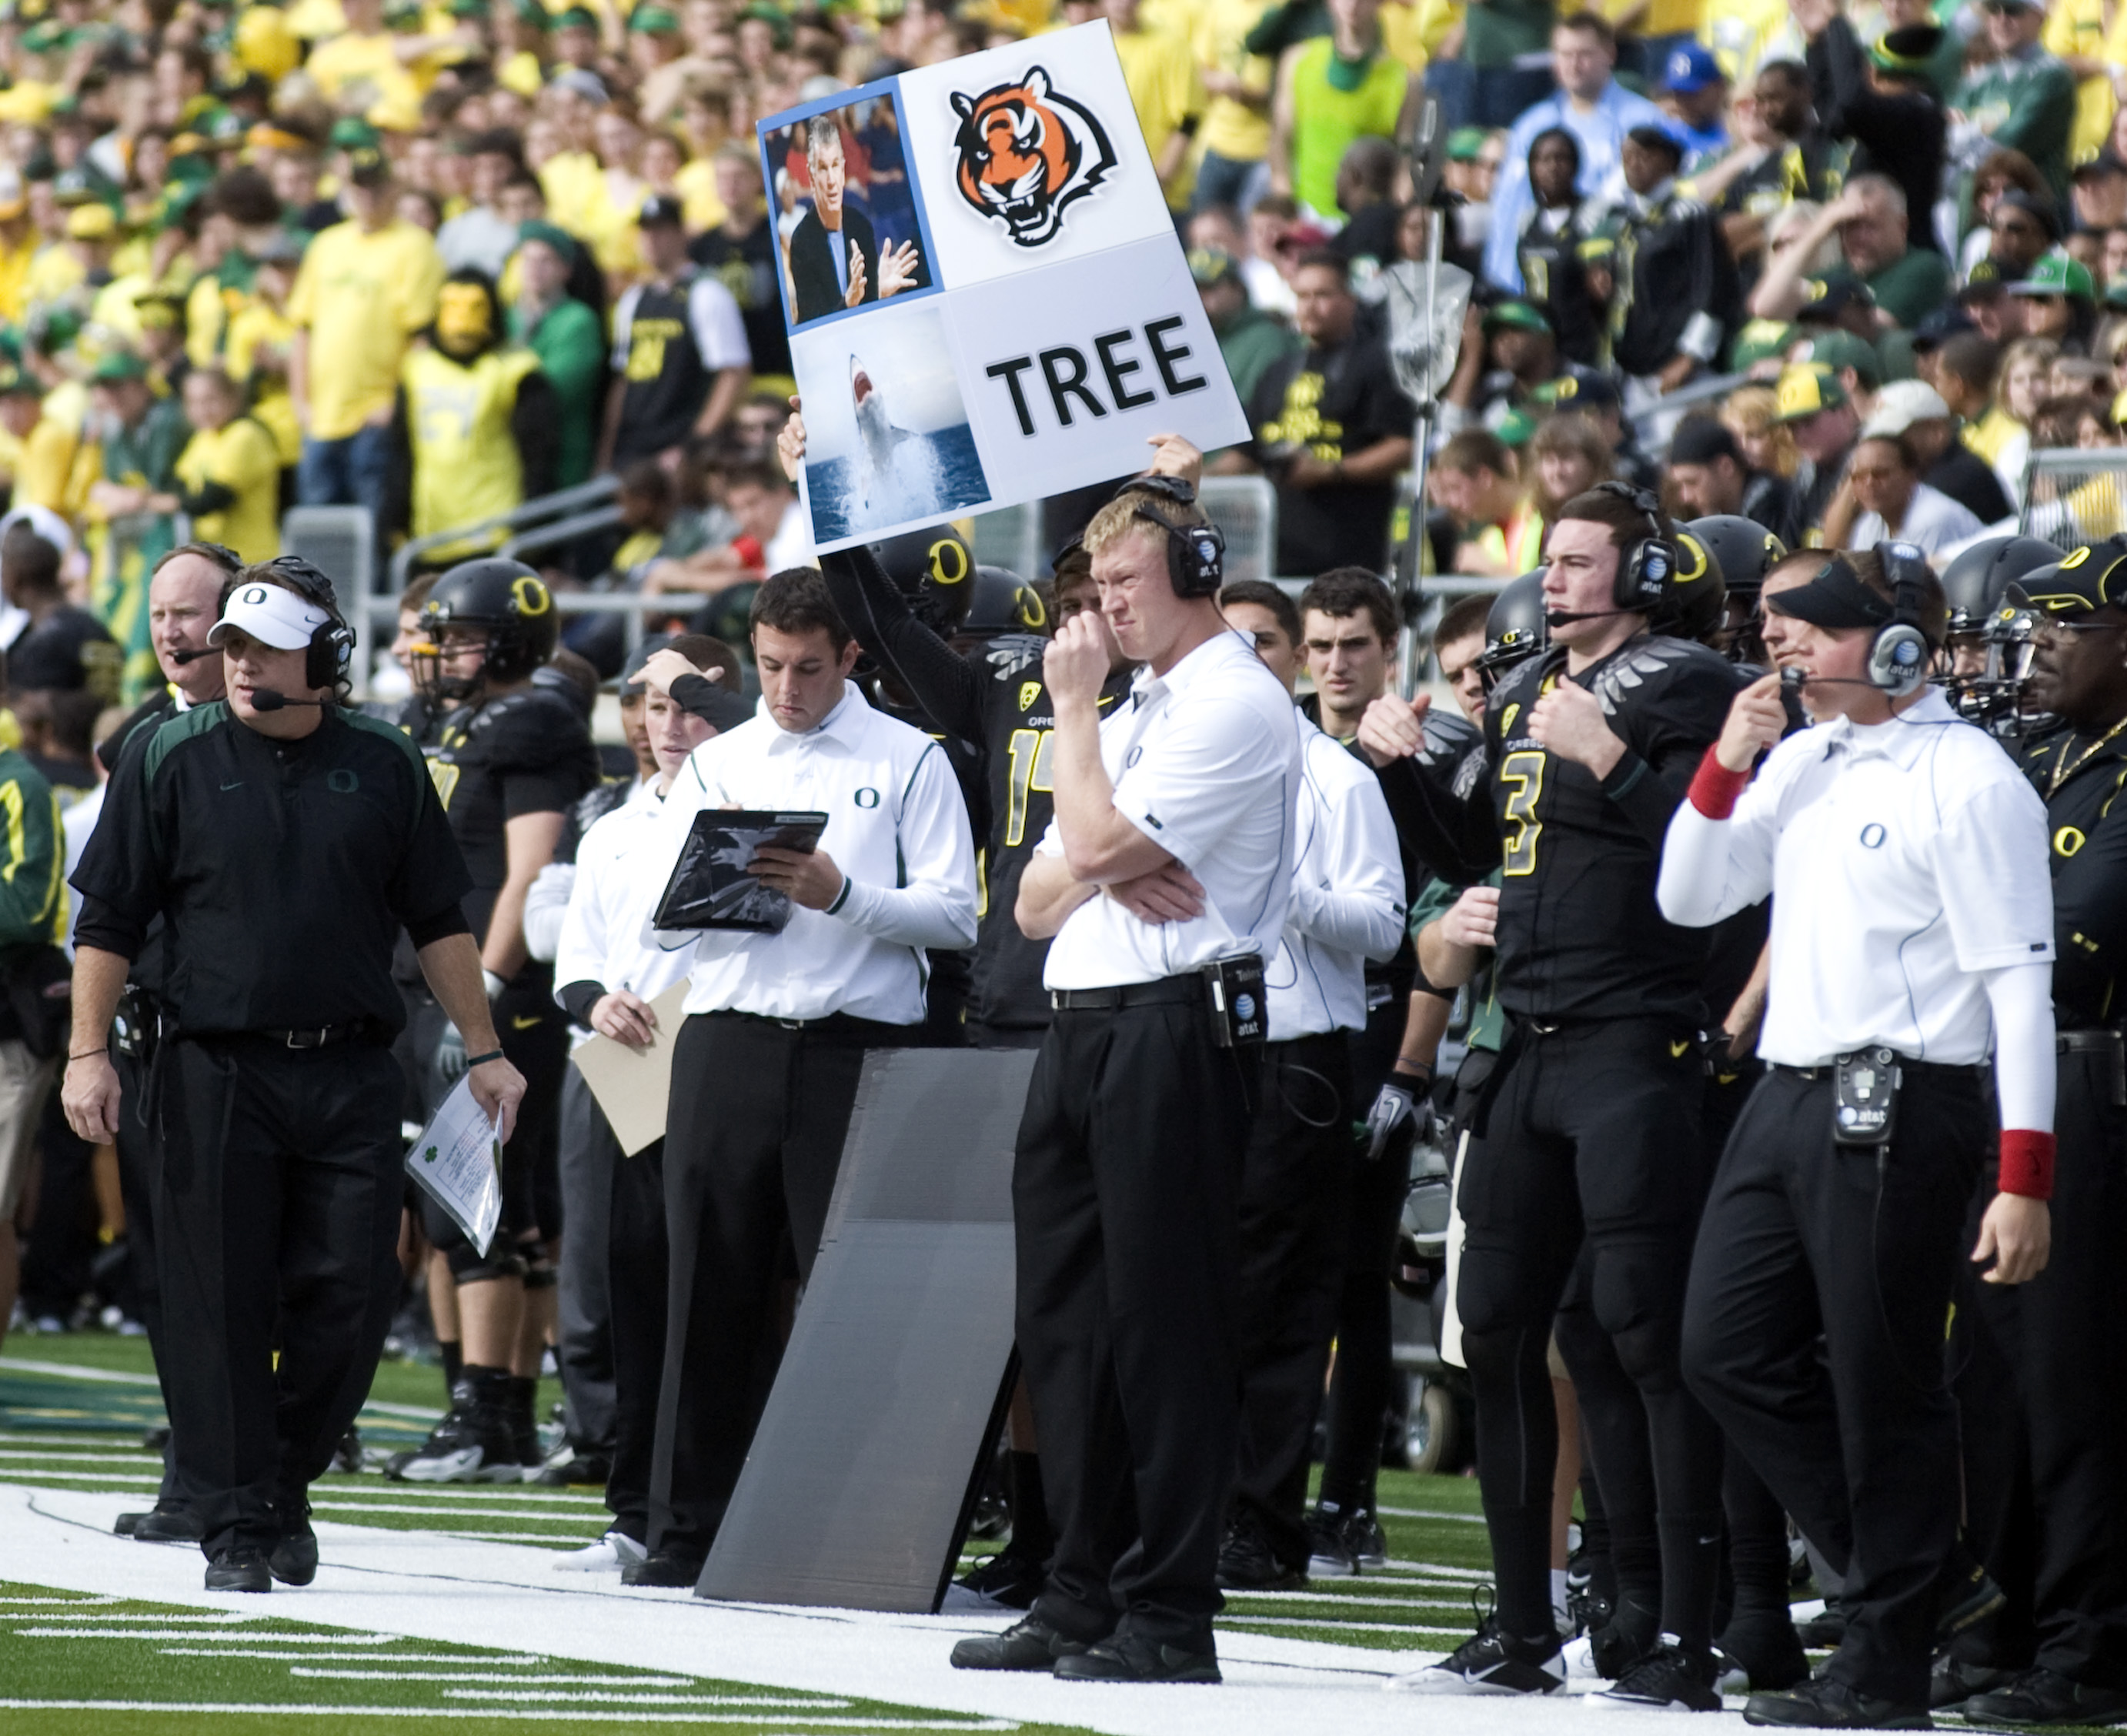 EUGENE, OR - NOVEMBER 6: Head coach Chip Kelly of the Oregon Ducks (far left) paces the sidelines as the offensive plays are signaled out to his team by use of a large signal board in the first quarter of the game against the Washington Huskies at Autzen